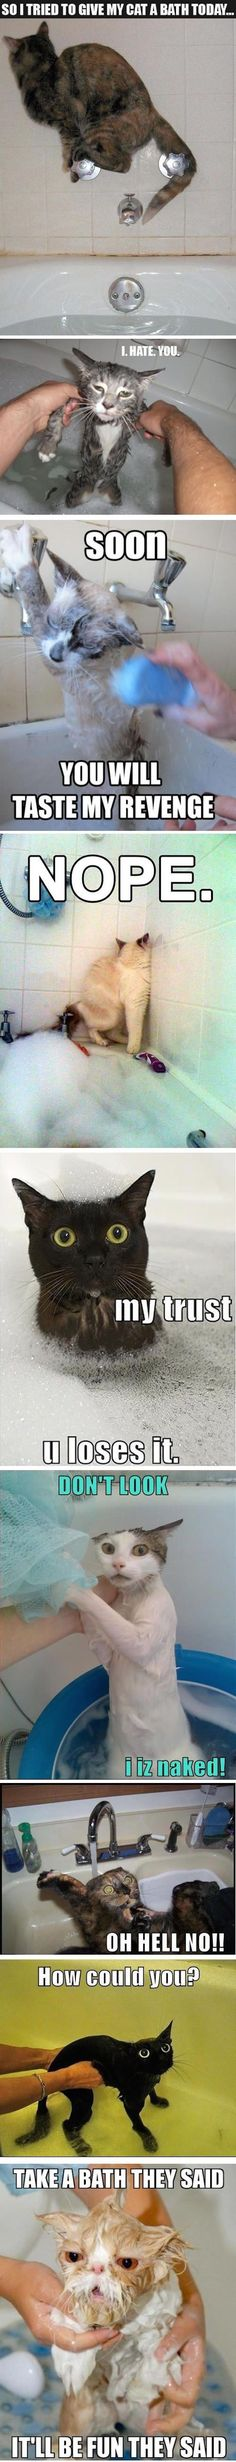 Funny cat bath pictures>>> XD I couldn't stop laughing Animal Jokes, Funny Animal Memes, Cute Funny Animals, Funny Animal Pictures, Cute Baby Animals, Cat Memes, Funny Cute, Best Funny Pictures, Cute Cats